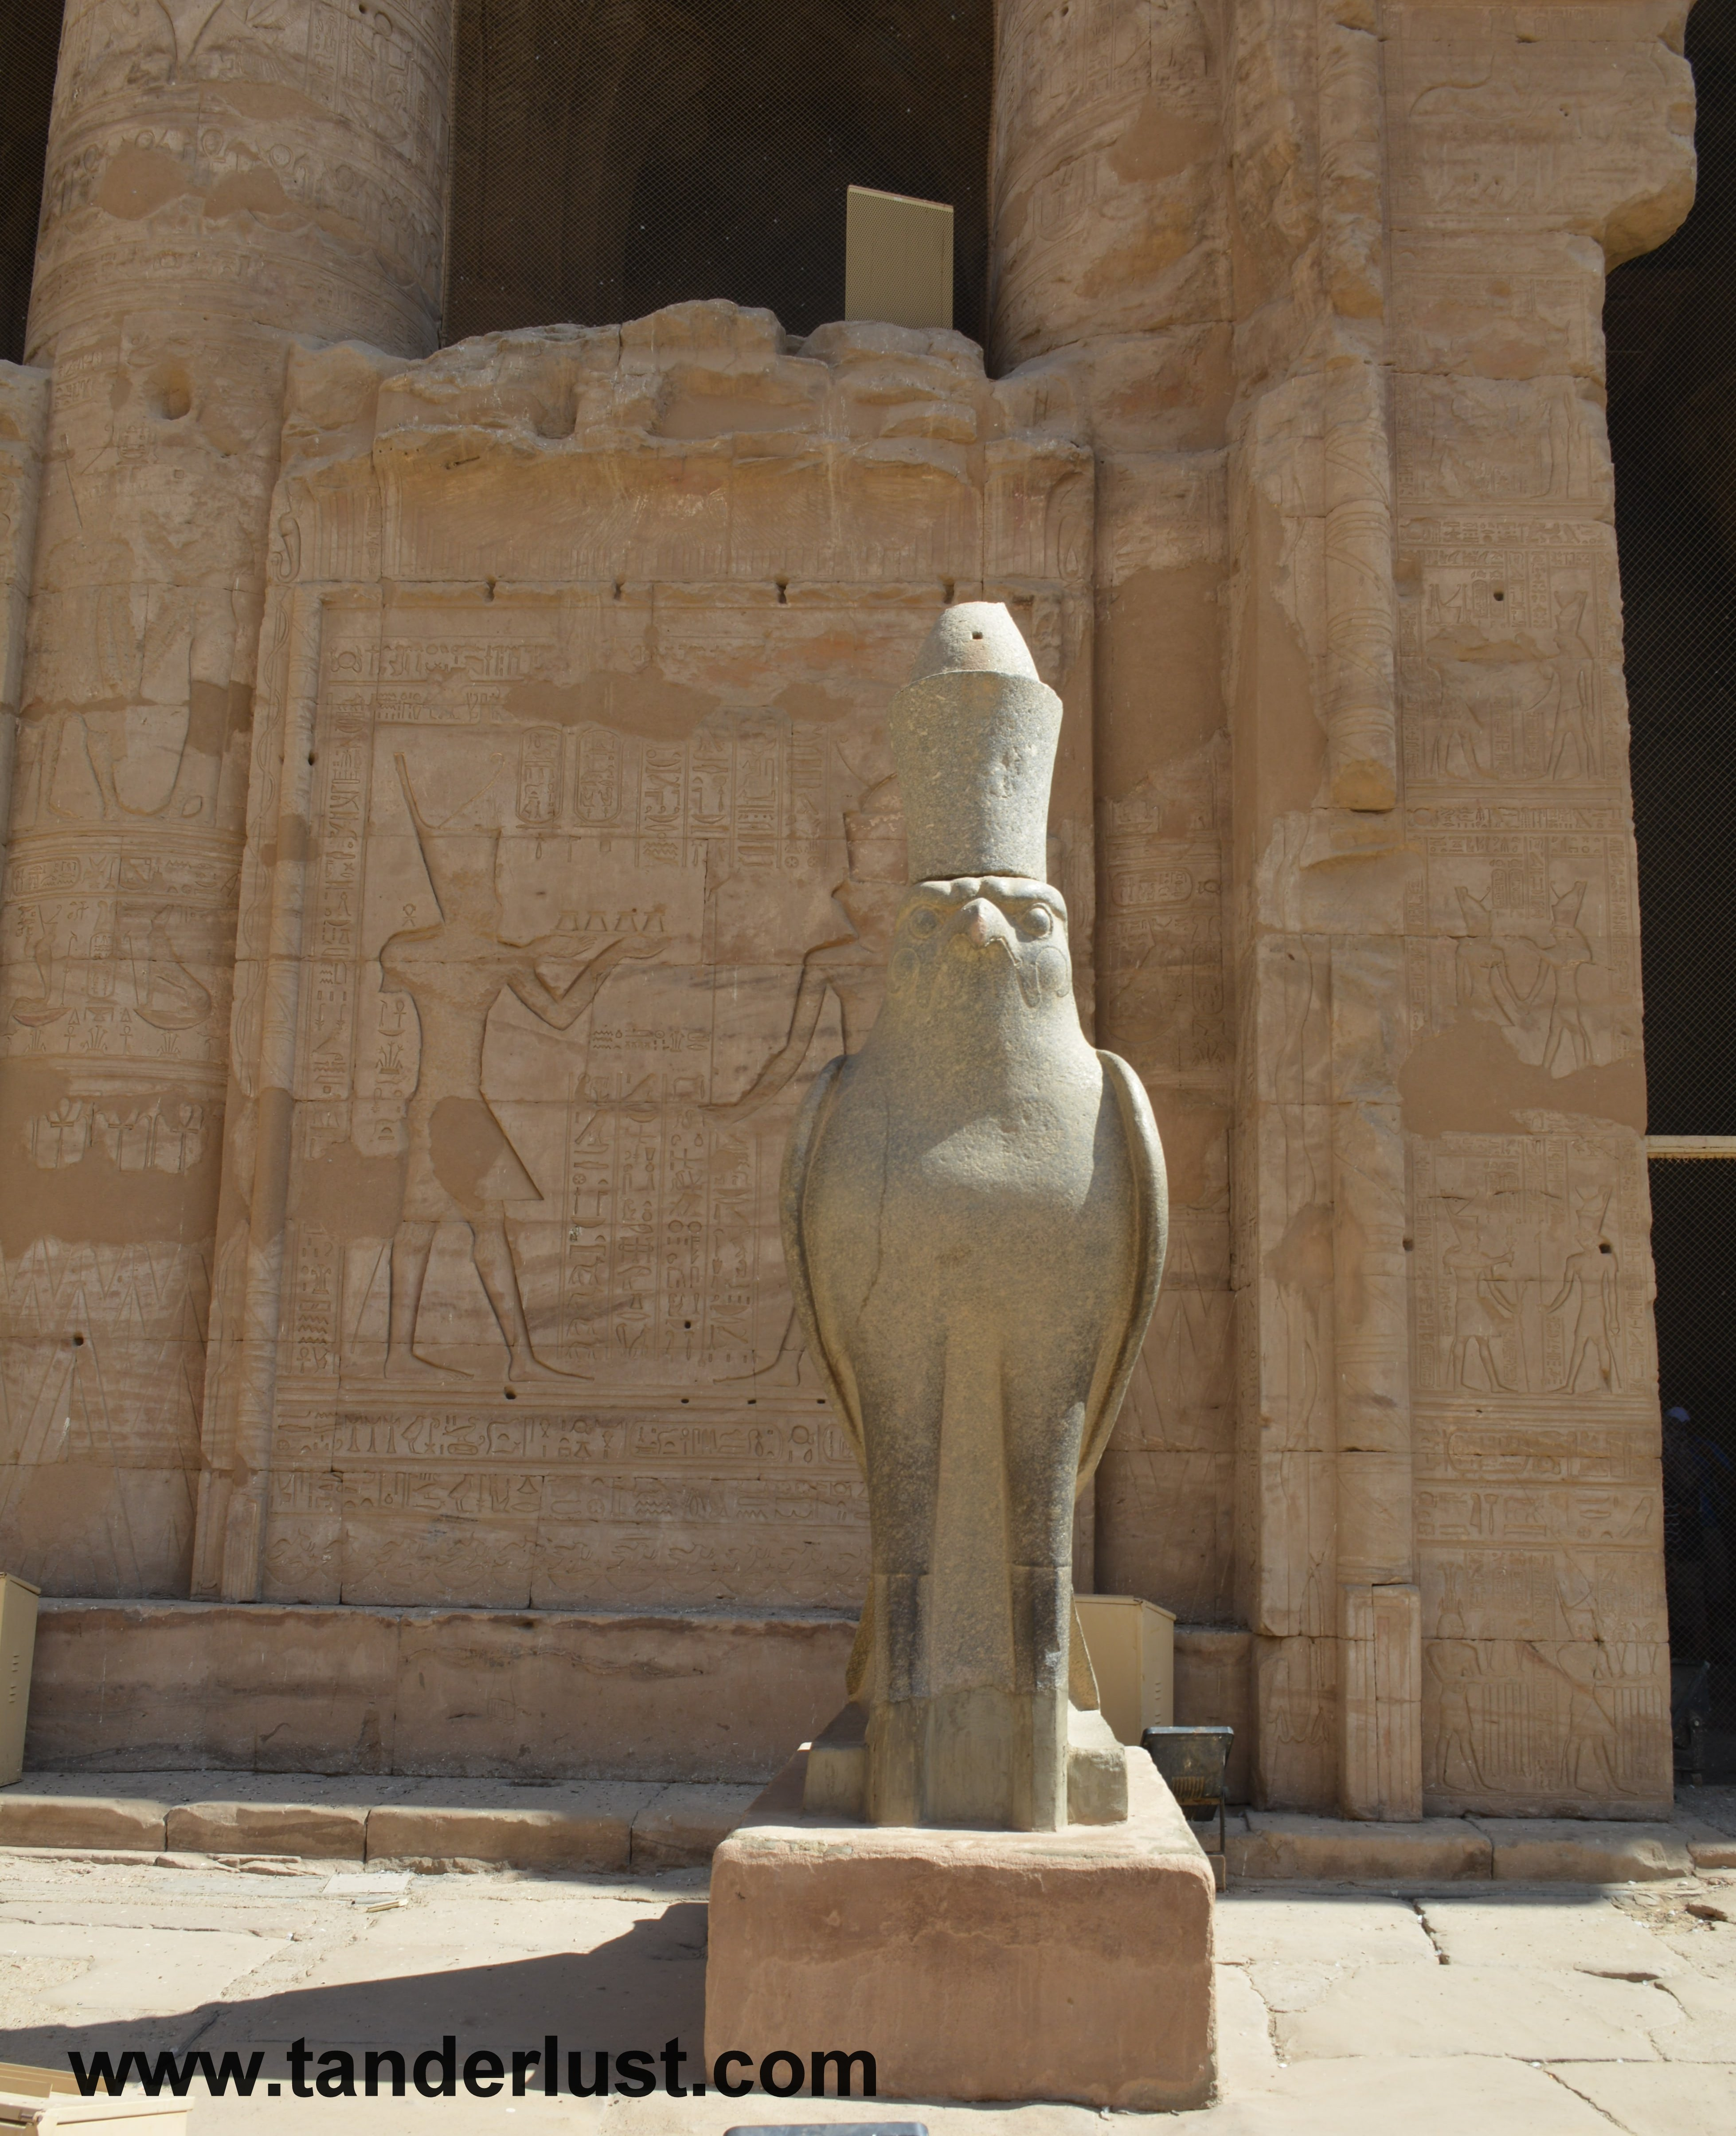 edfu ancient egypt